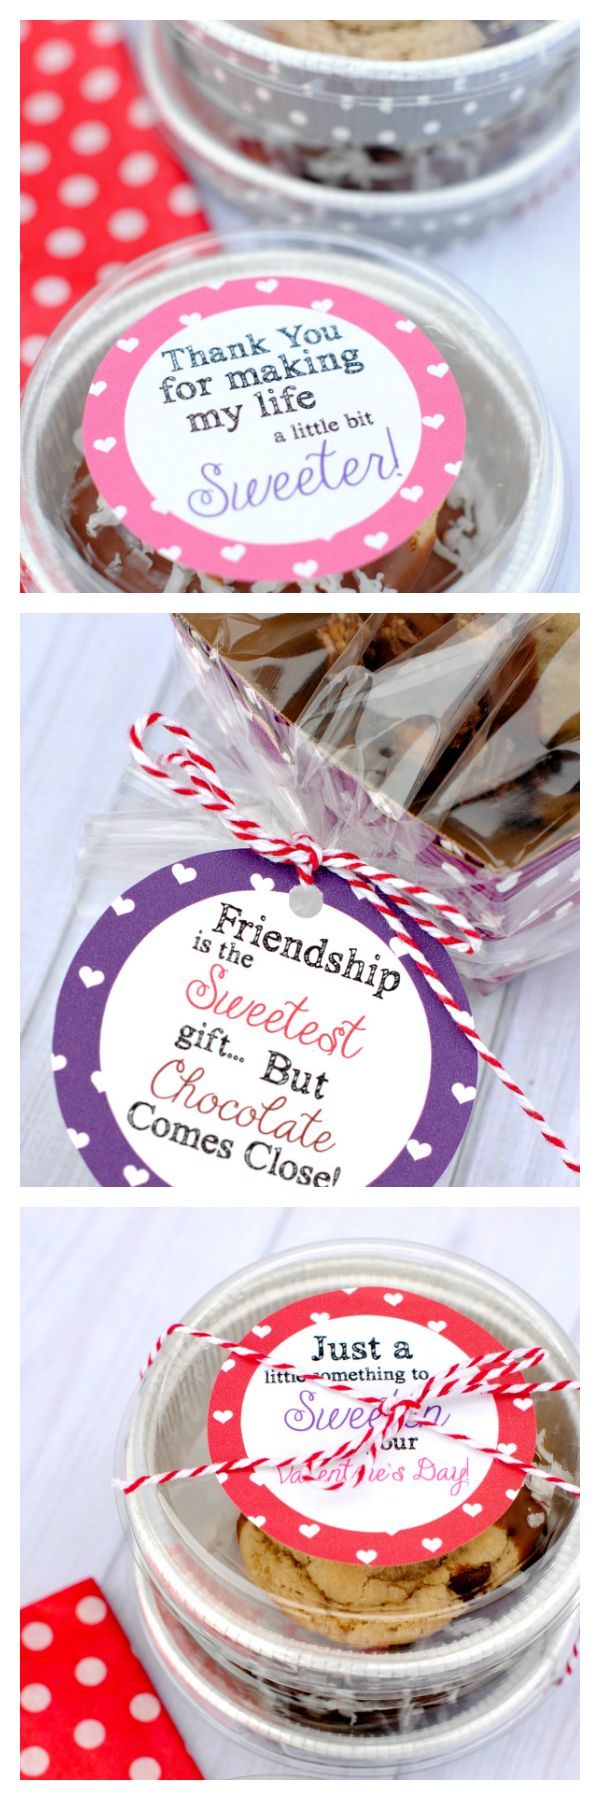 DIY Gifts 2018 /2019  sc 1 st  GiftsDetective.com & DIY Gifts Ideas : Cute Gift Tags to package Valentineu0027s Treats for ...